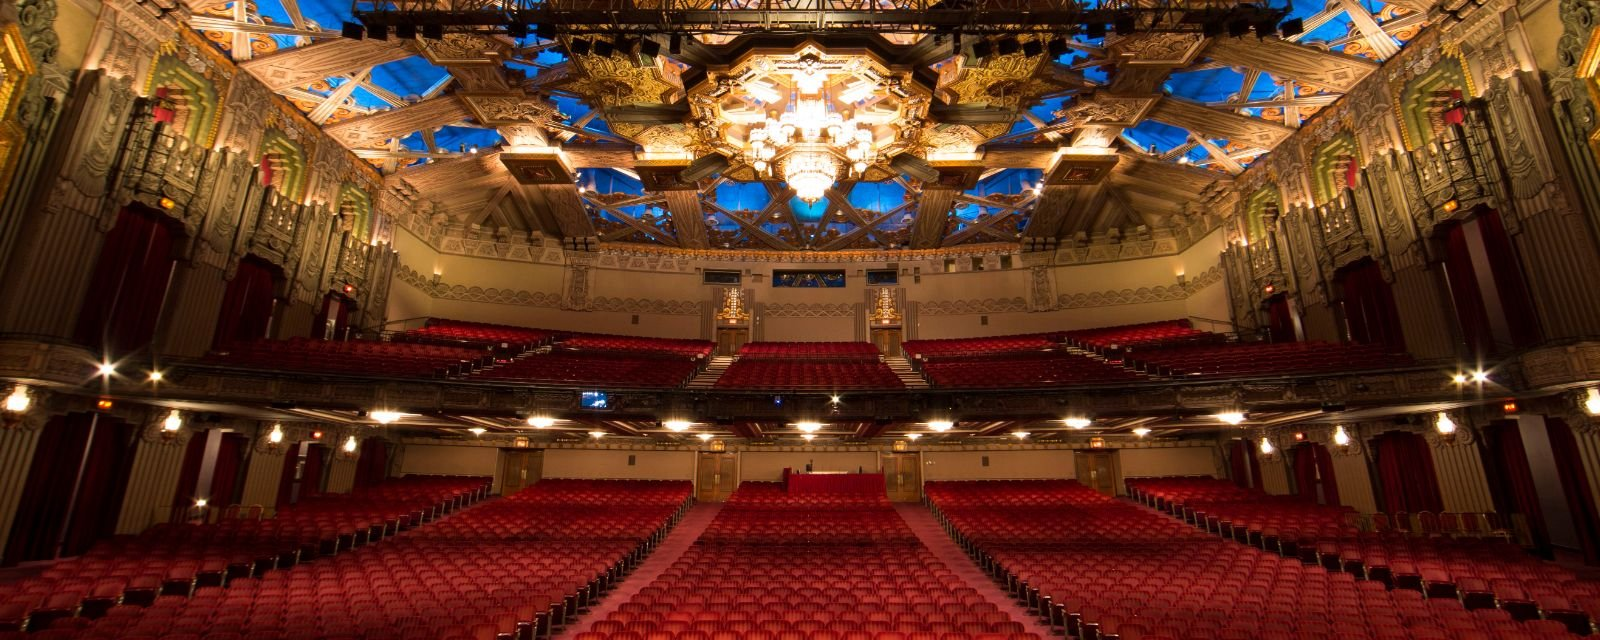 The inside of the James M. Nederlander Theatre